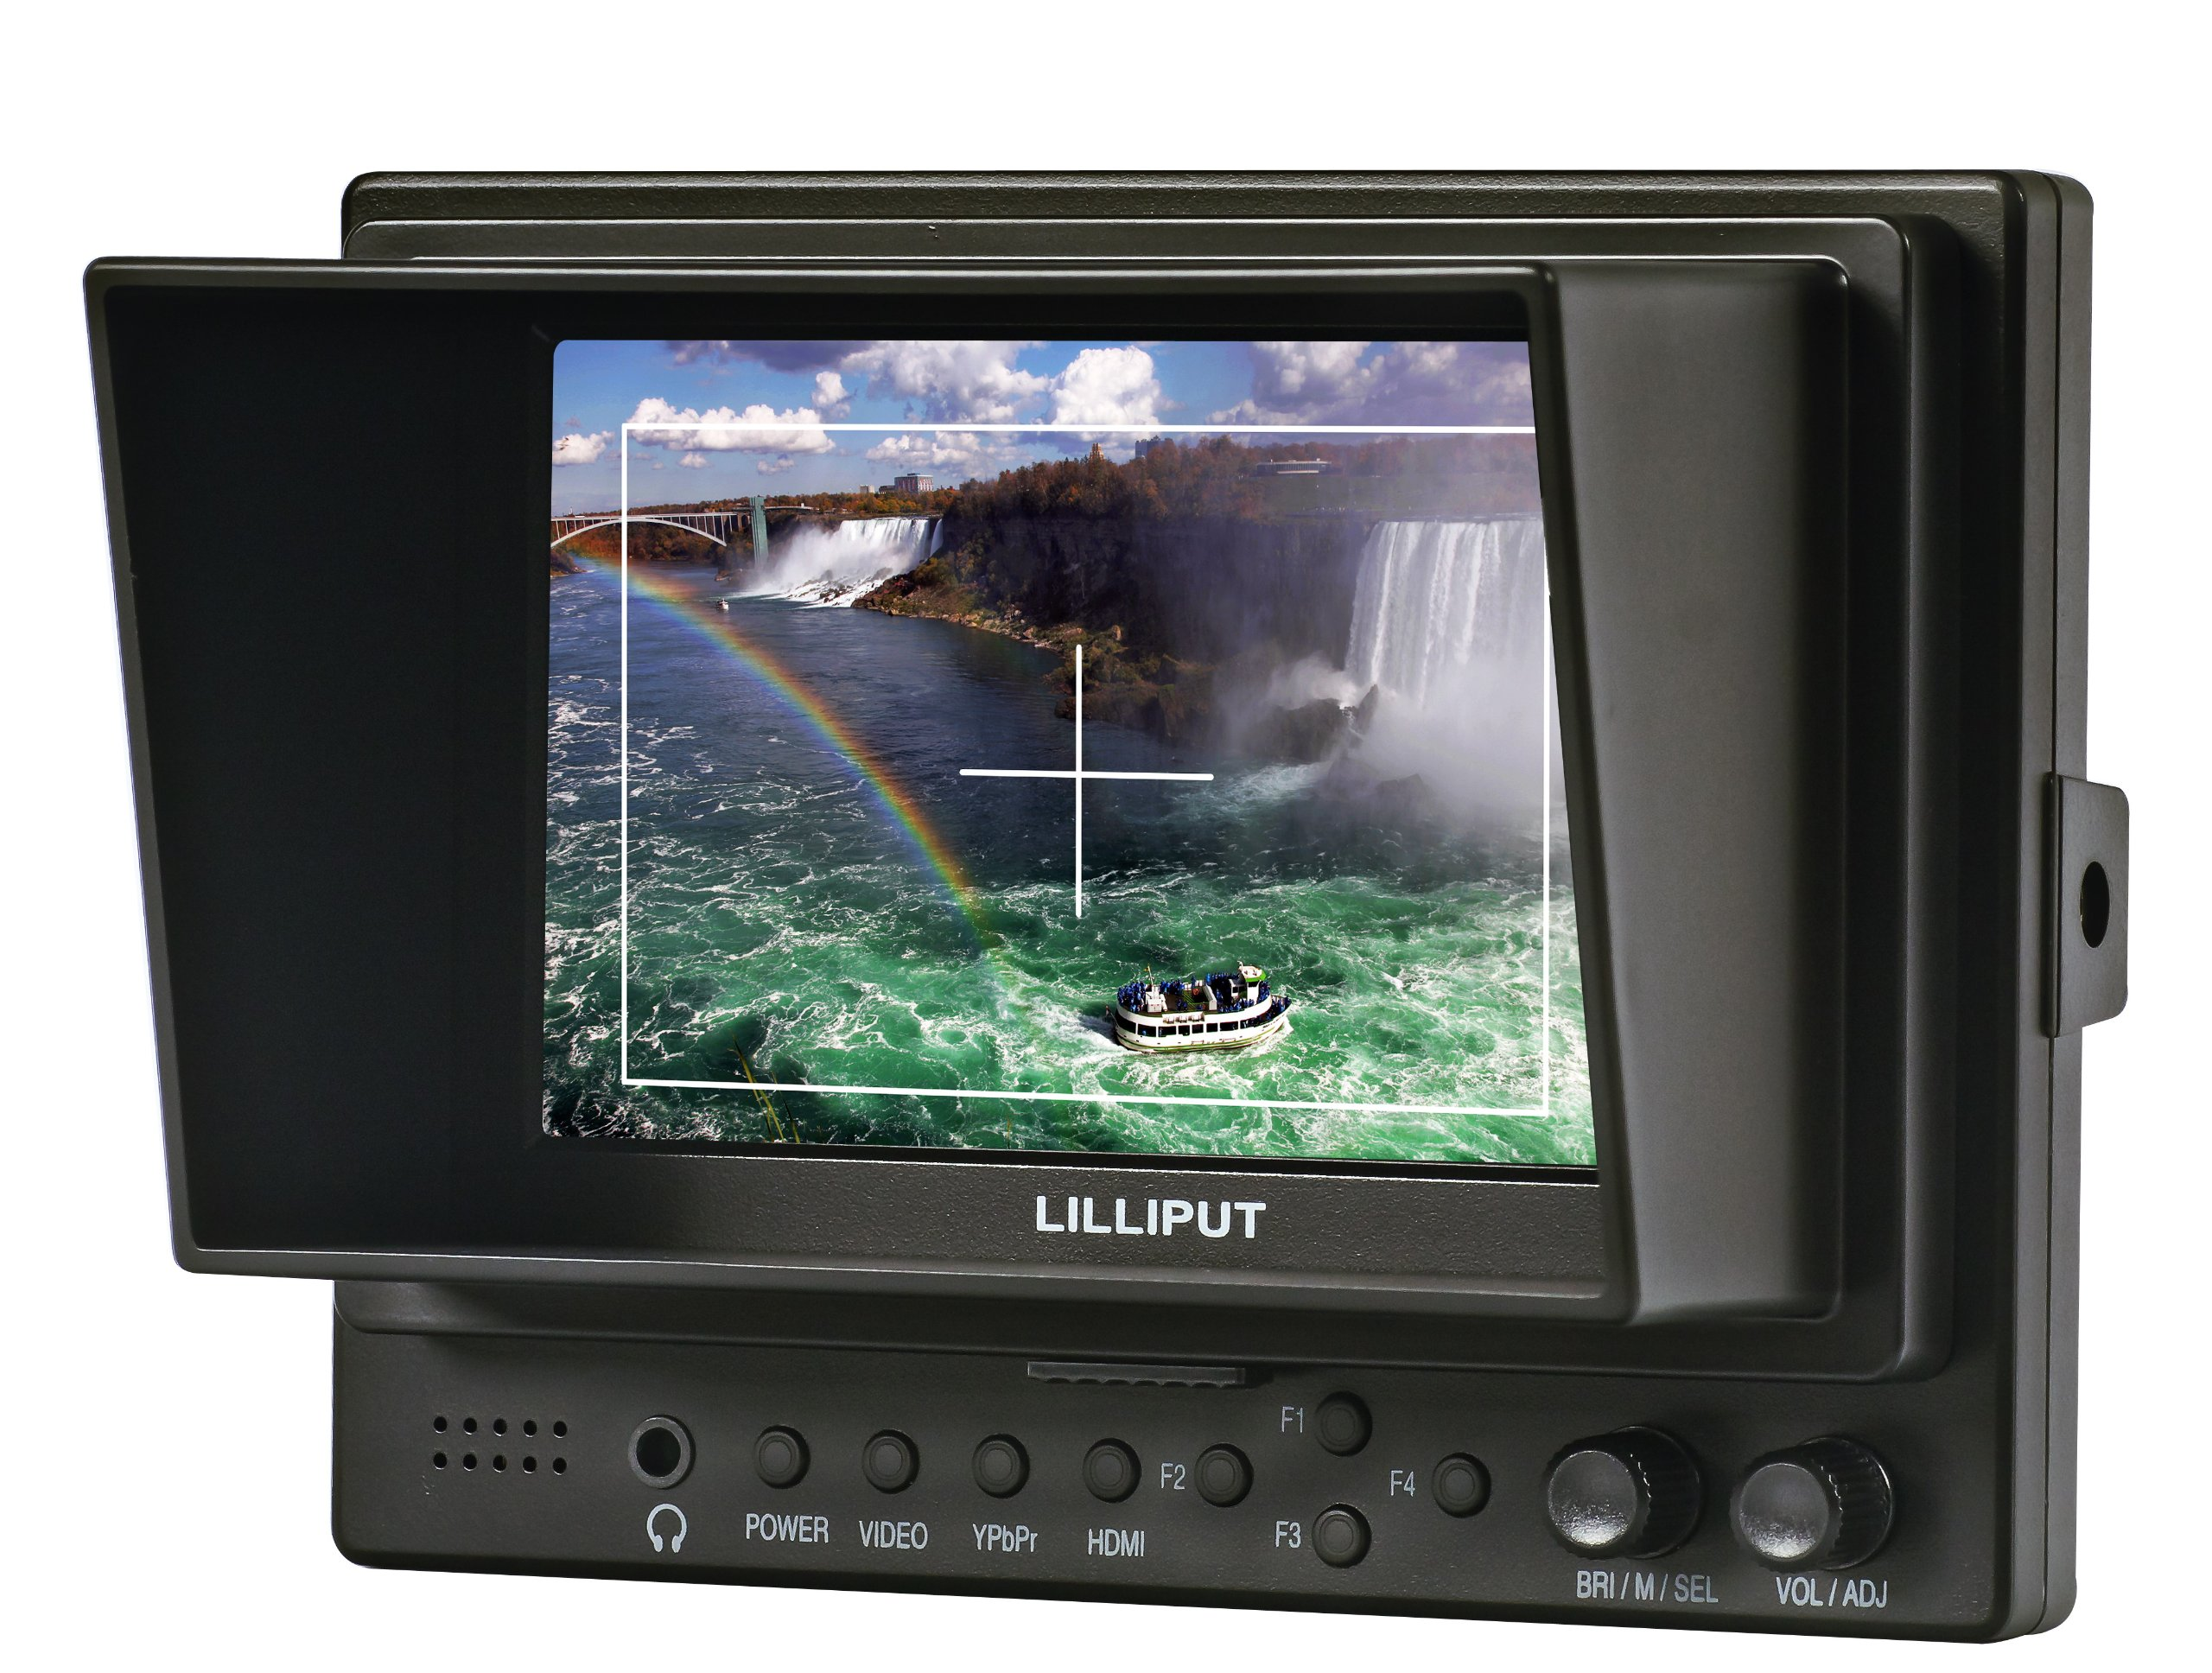 Lilliput 5'''' 569gl-50np/h/y Hdmi In+shoe Mount+hdmi Cable+gimbal Bracket on Camera Video Field Monitor